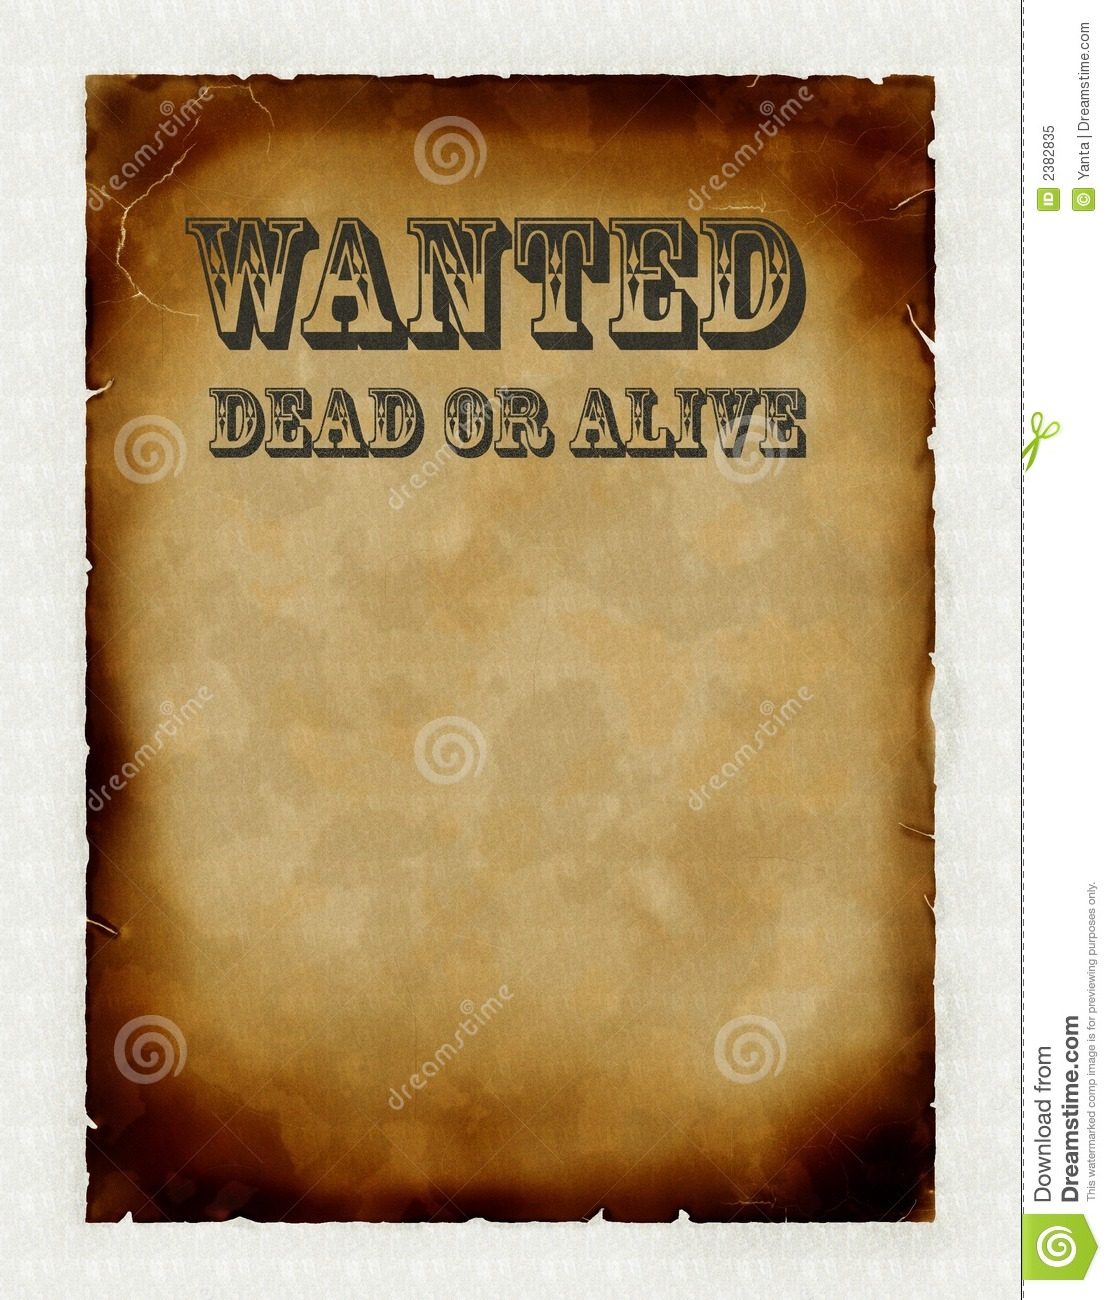 Vintage poster royalty free stock photo image 2382835 for Wanted dead or alive poster template free